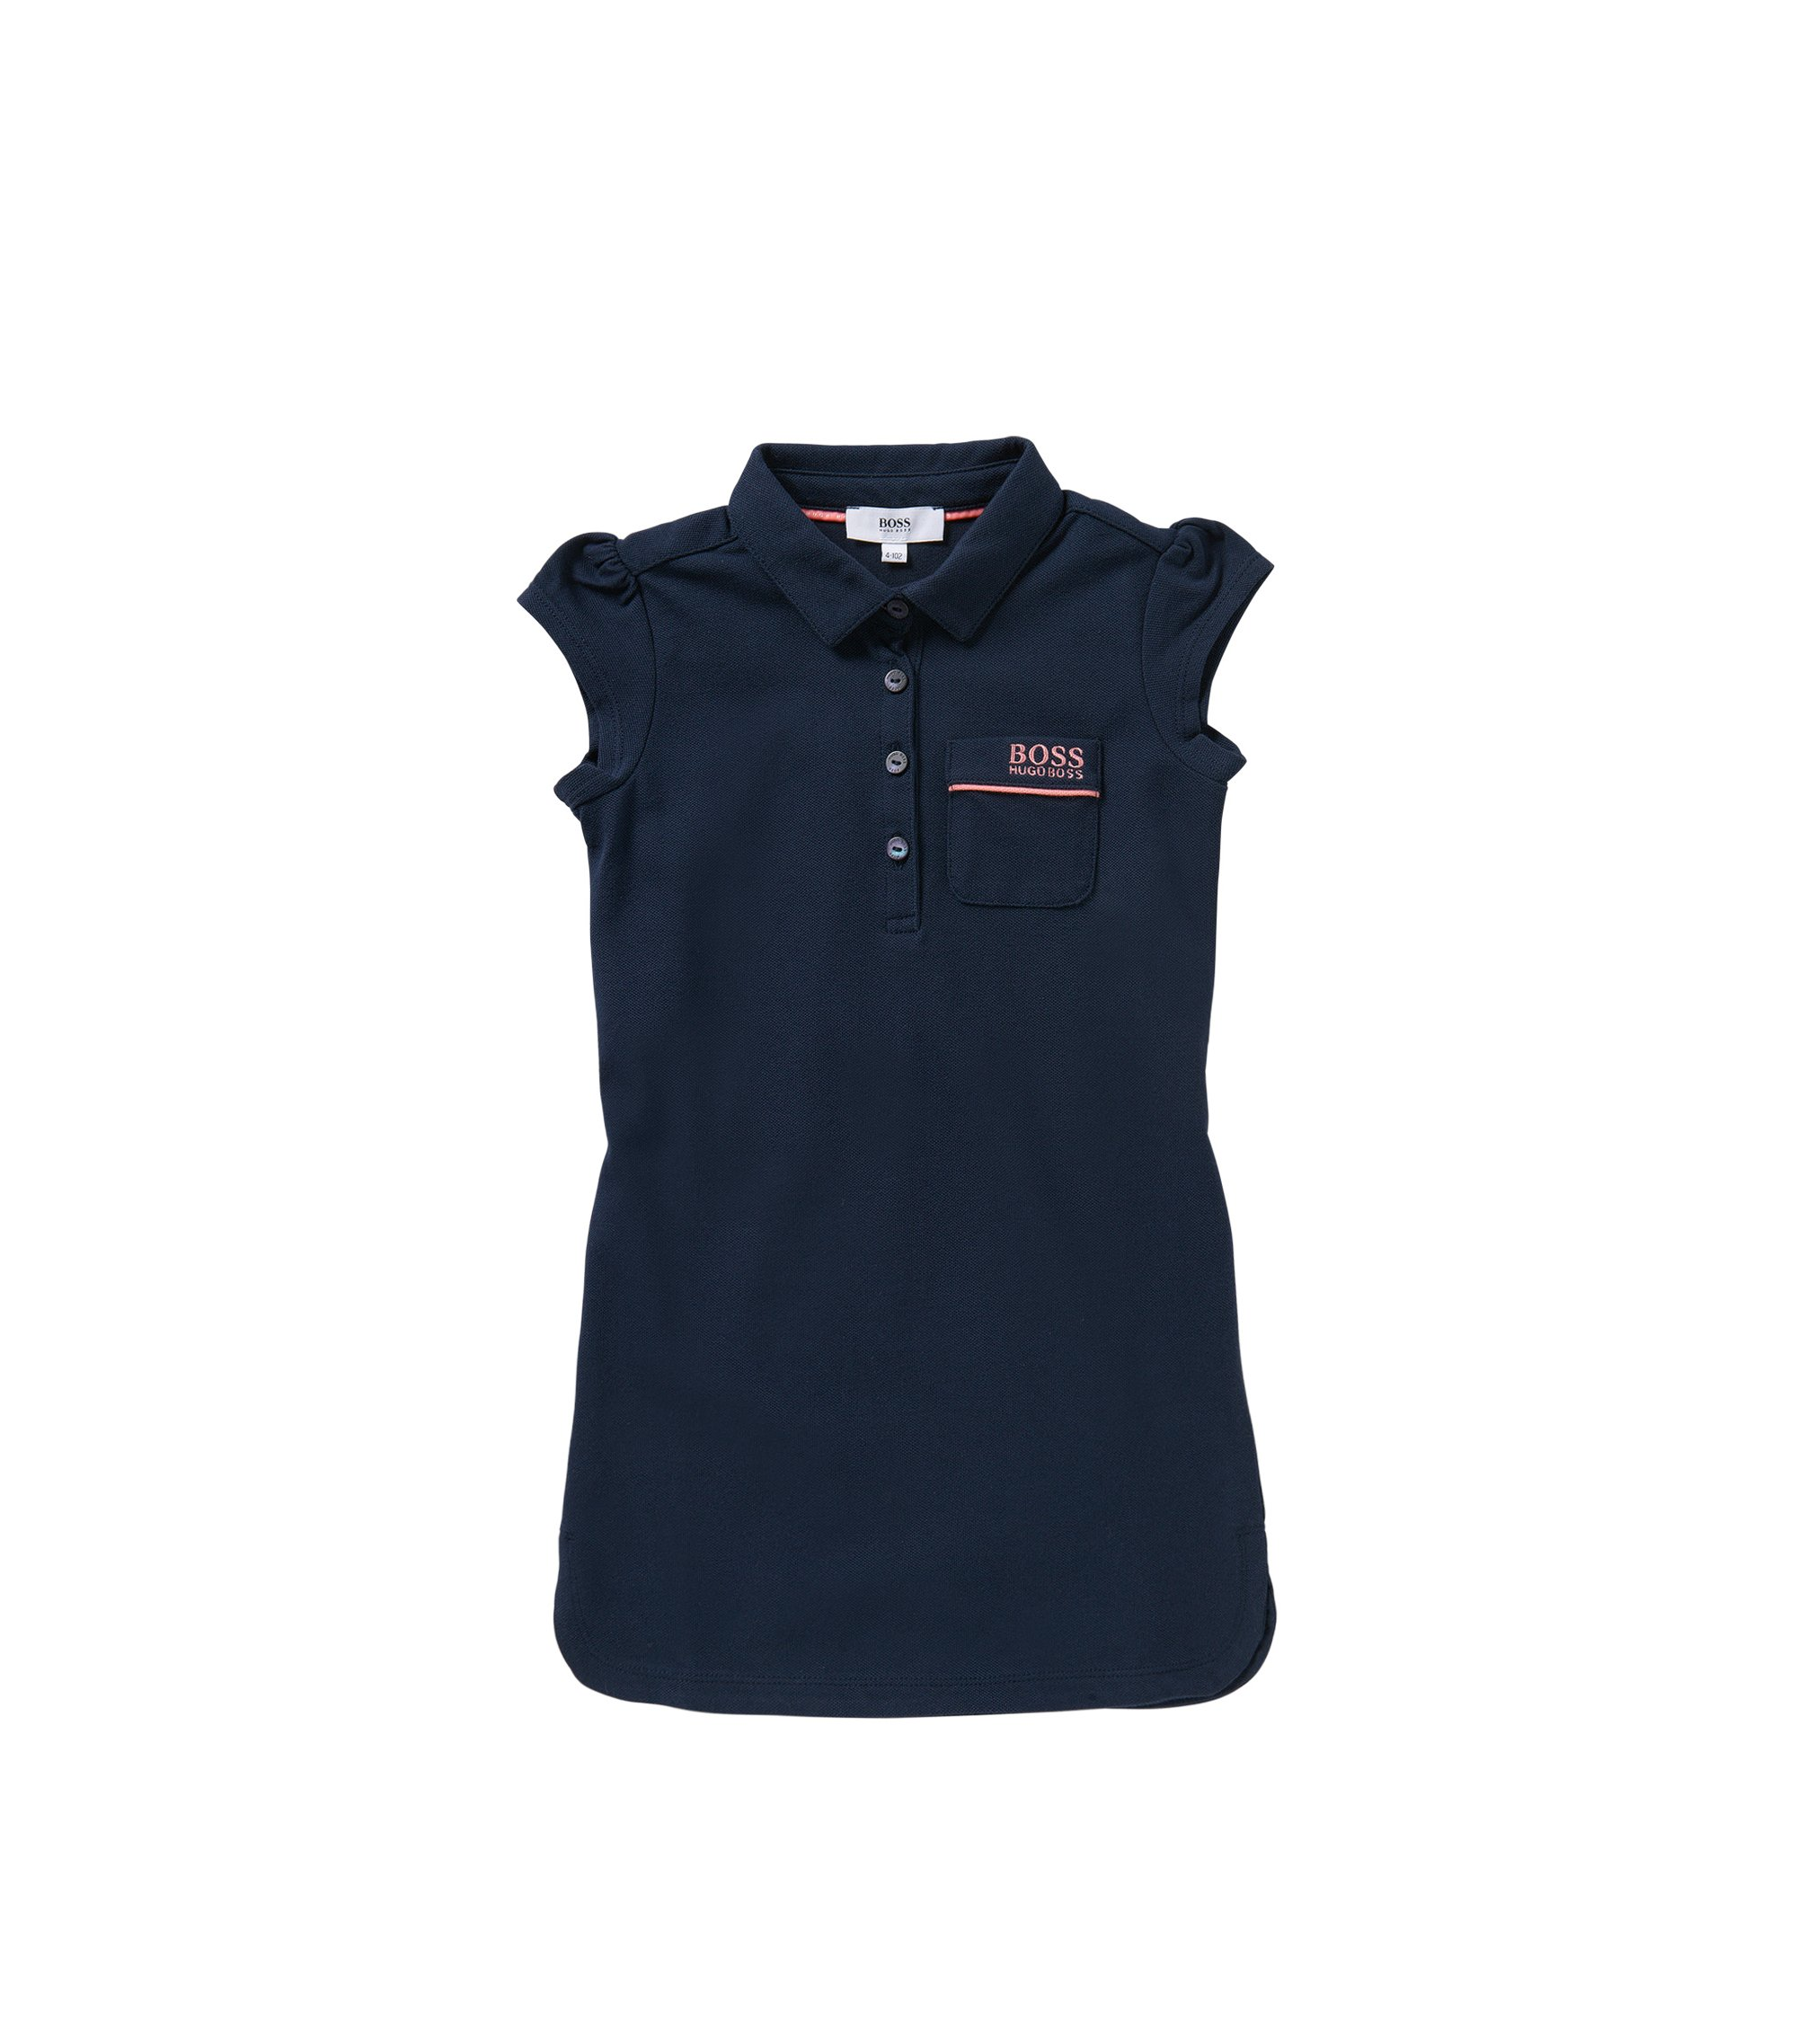 Kids' dress in stretch cotton in polo style: 'J12143', Dark Blue